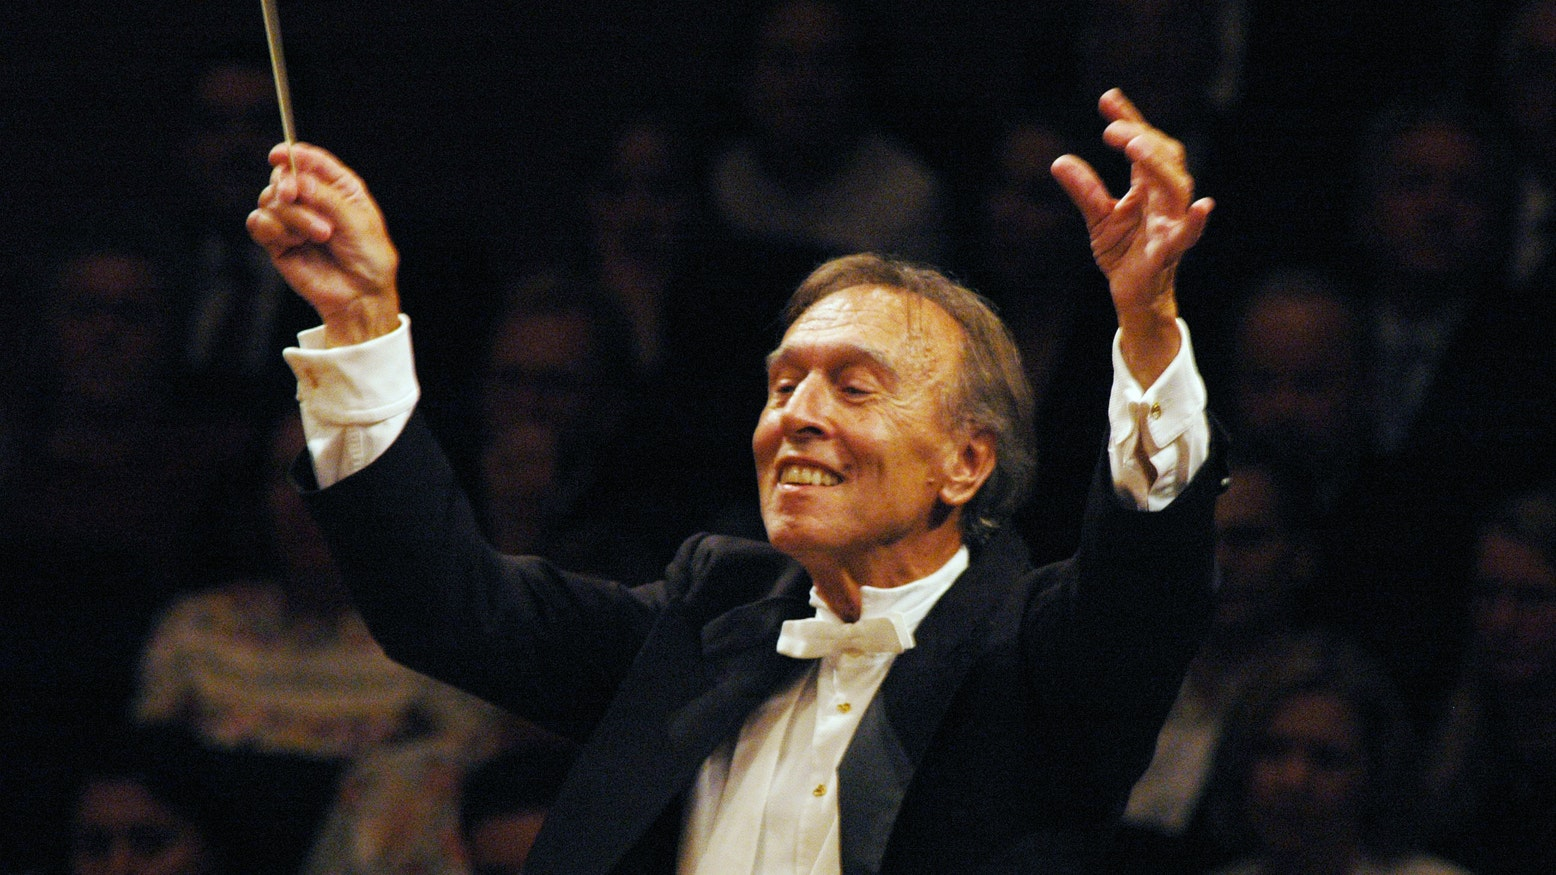 Happy Birthday Claudio Abbado!